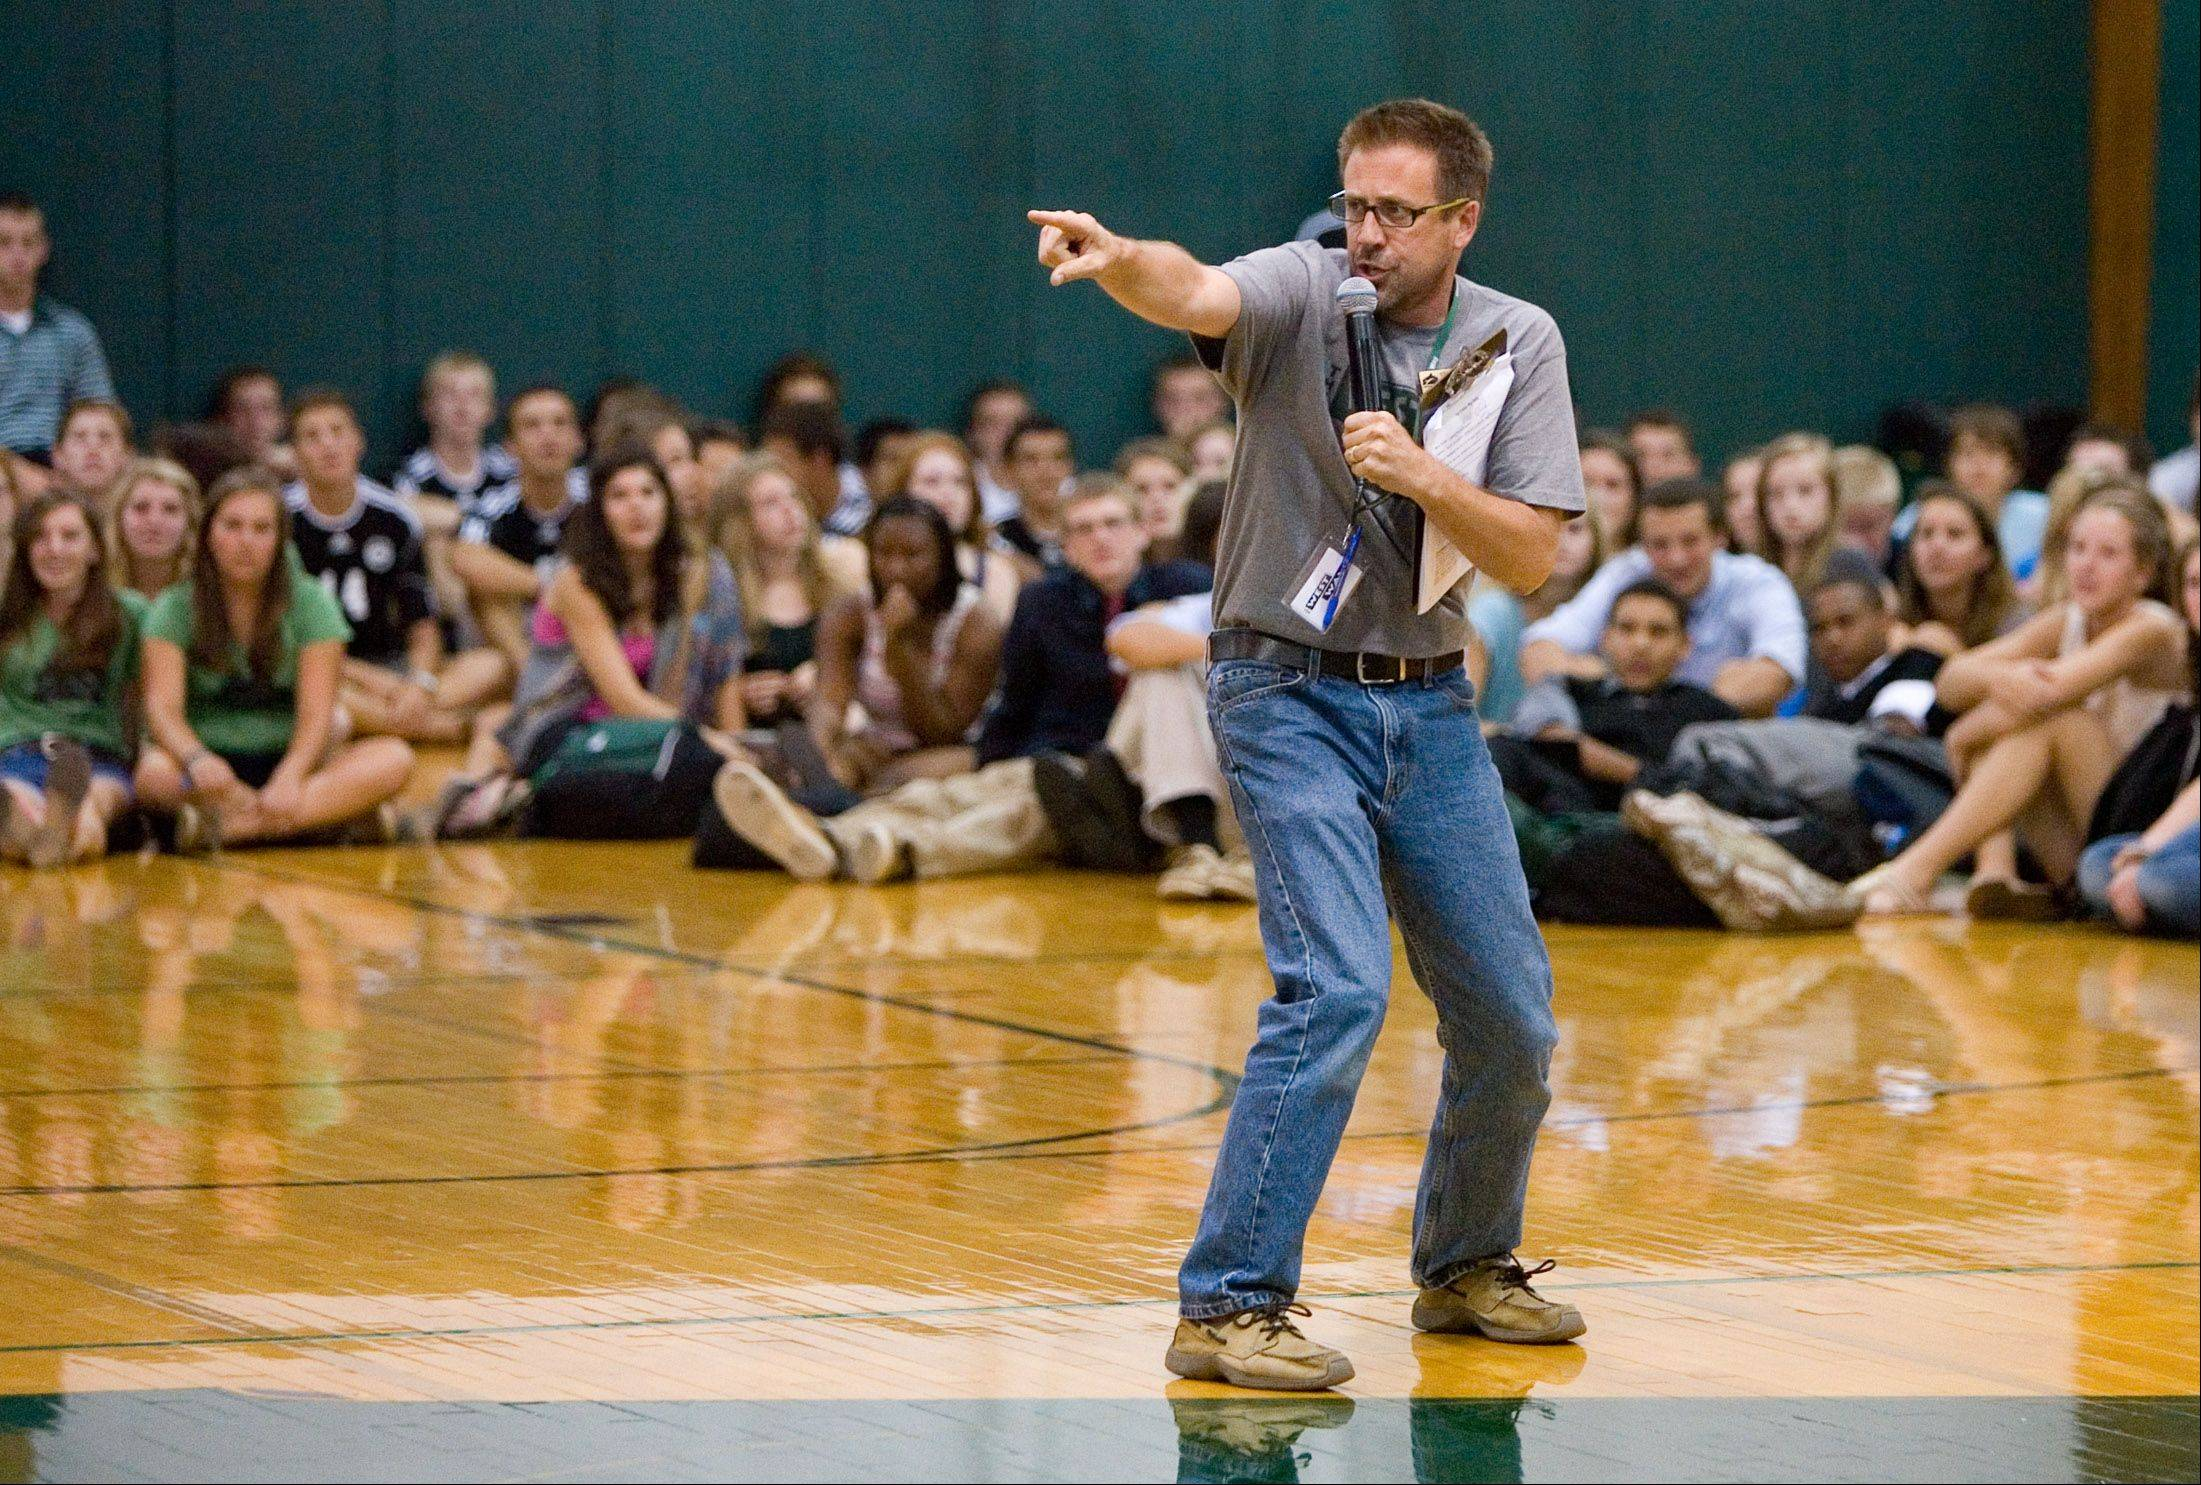 Glenbard West English teacher Steve Wiersum served as emcee for the school's pep rally Friday.